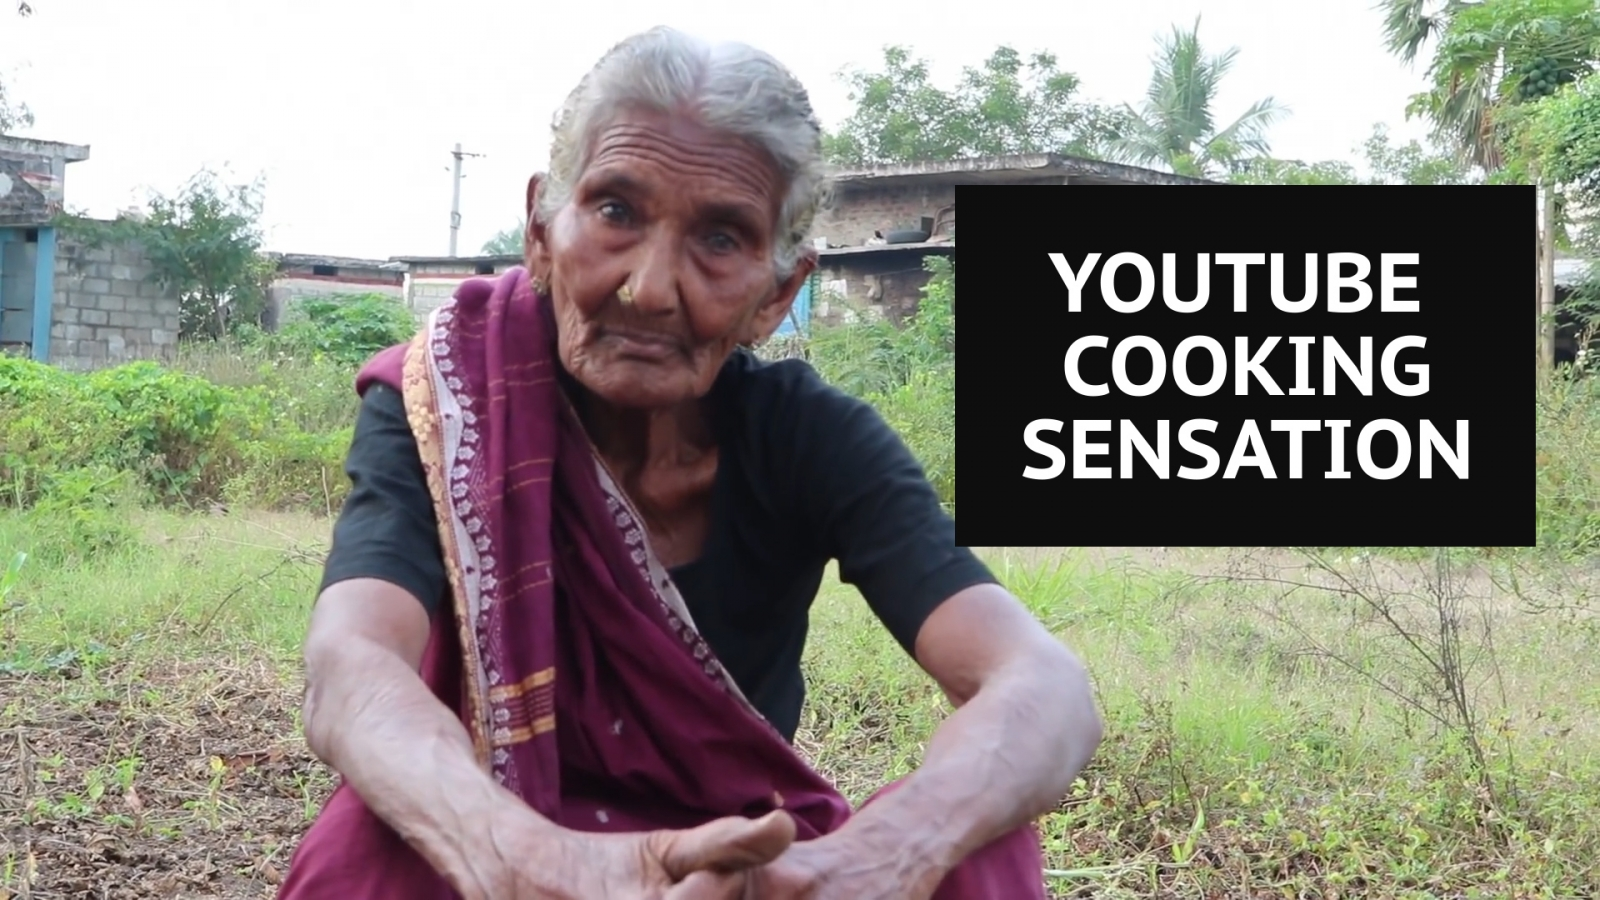 meet-mastanamma-the-106-year-old-youtube-cooking-sensation